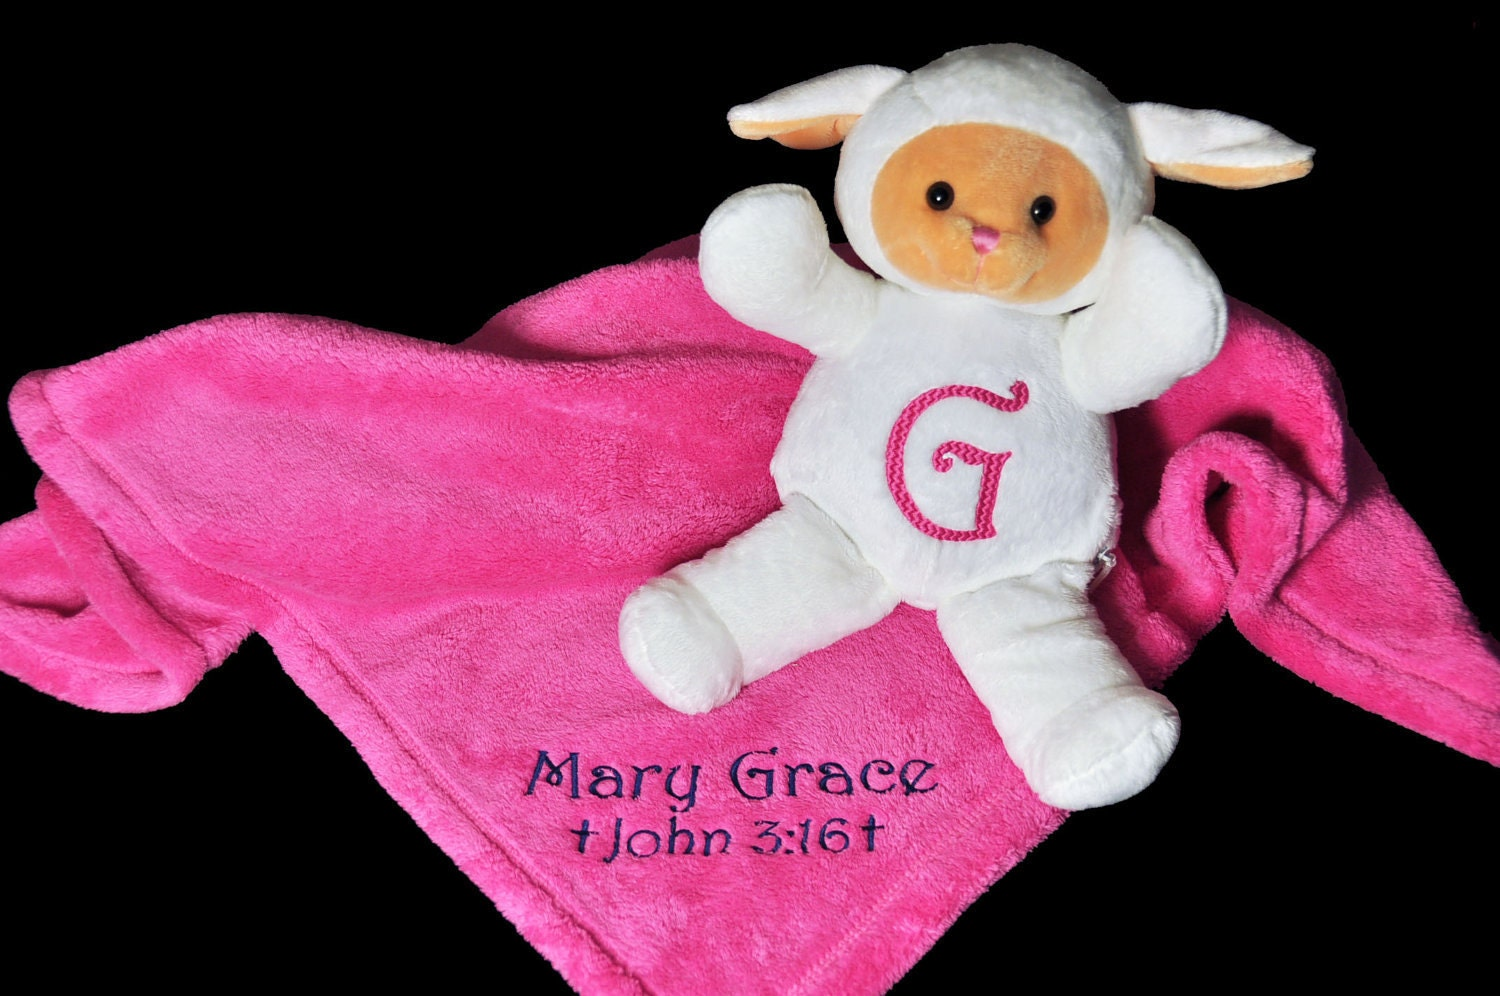 Personalized Plush Animal And Baby Blanket Combo